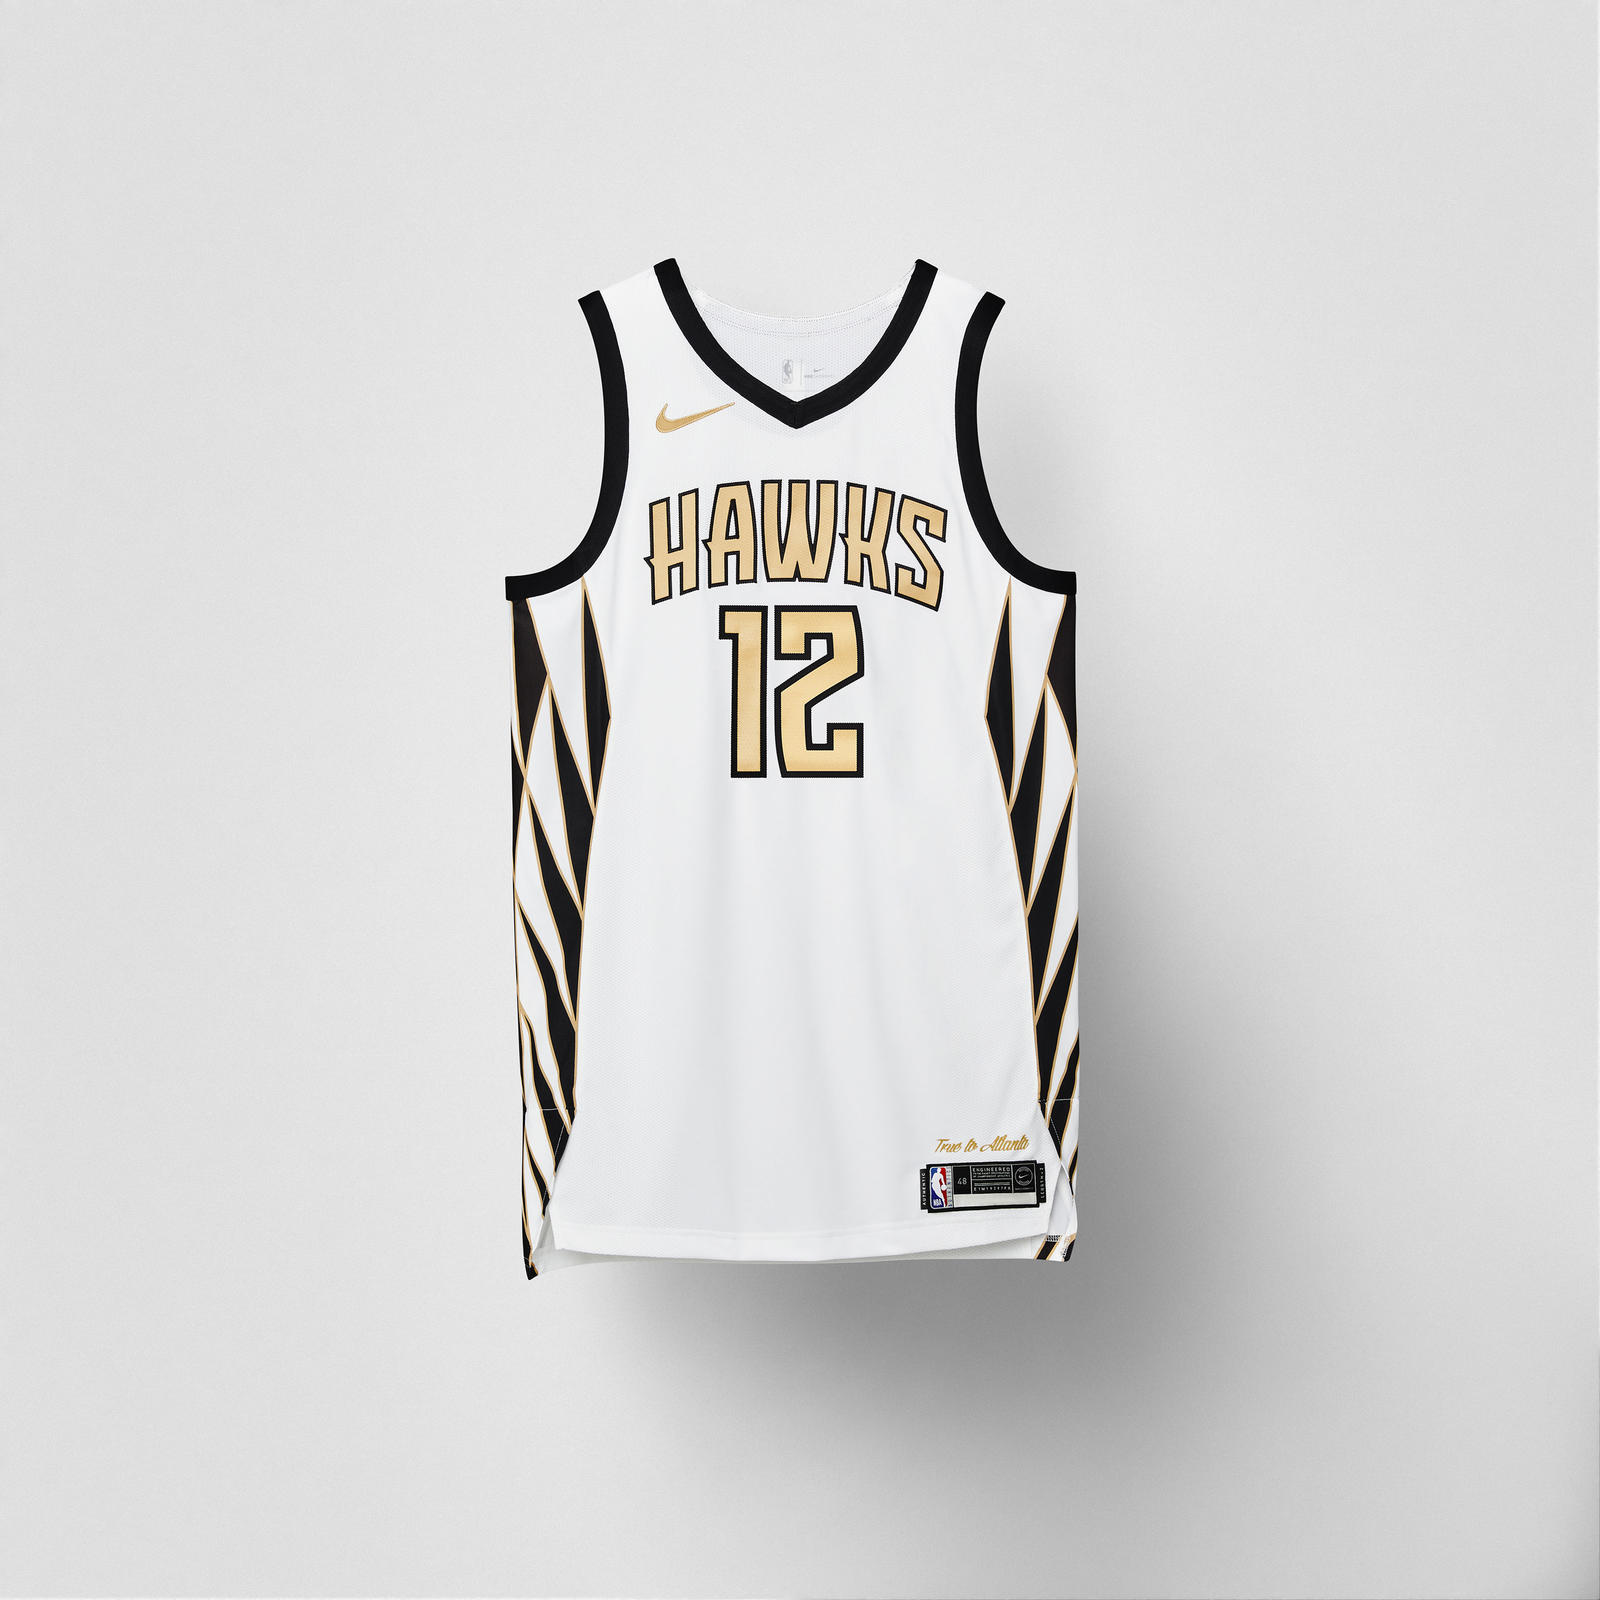 a0e8be234bc2 NBA City Edition Uniforms 2018-19 - Nike News